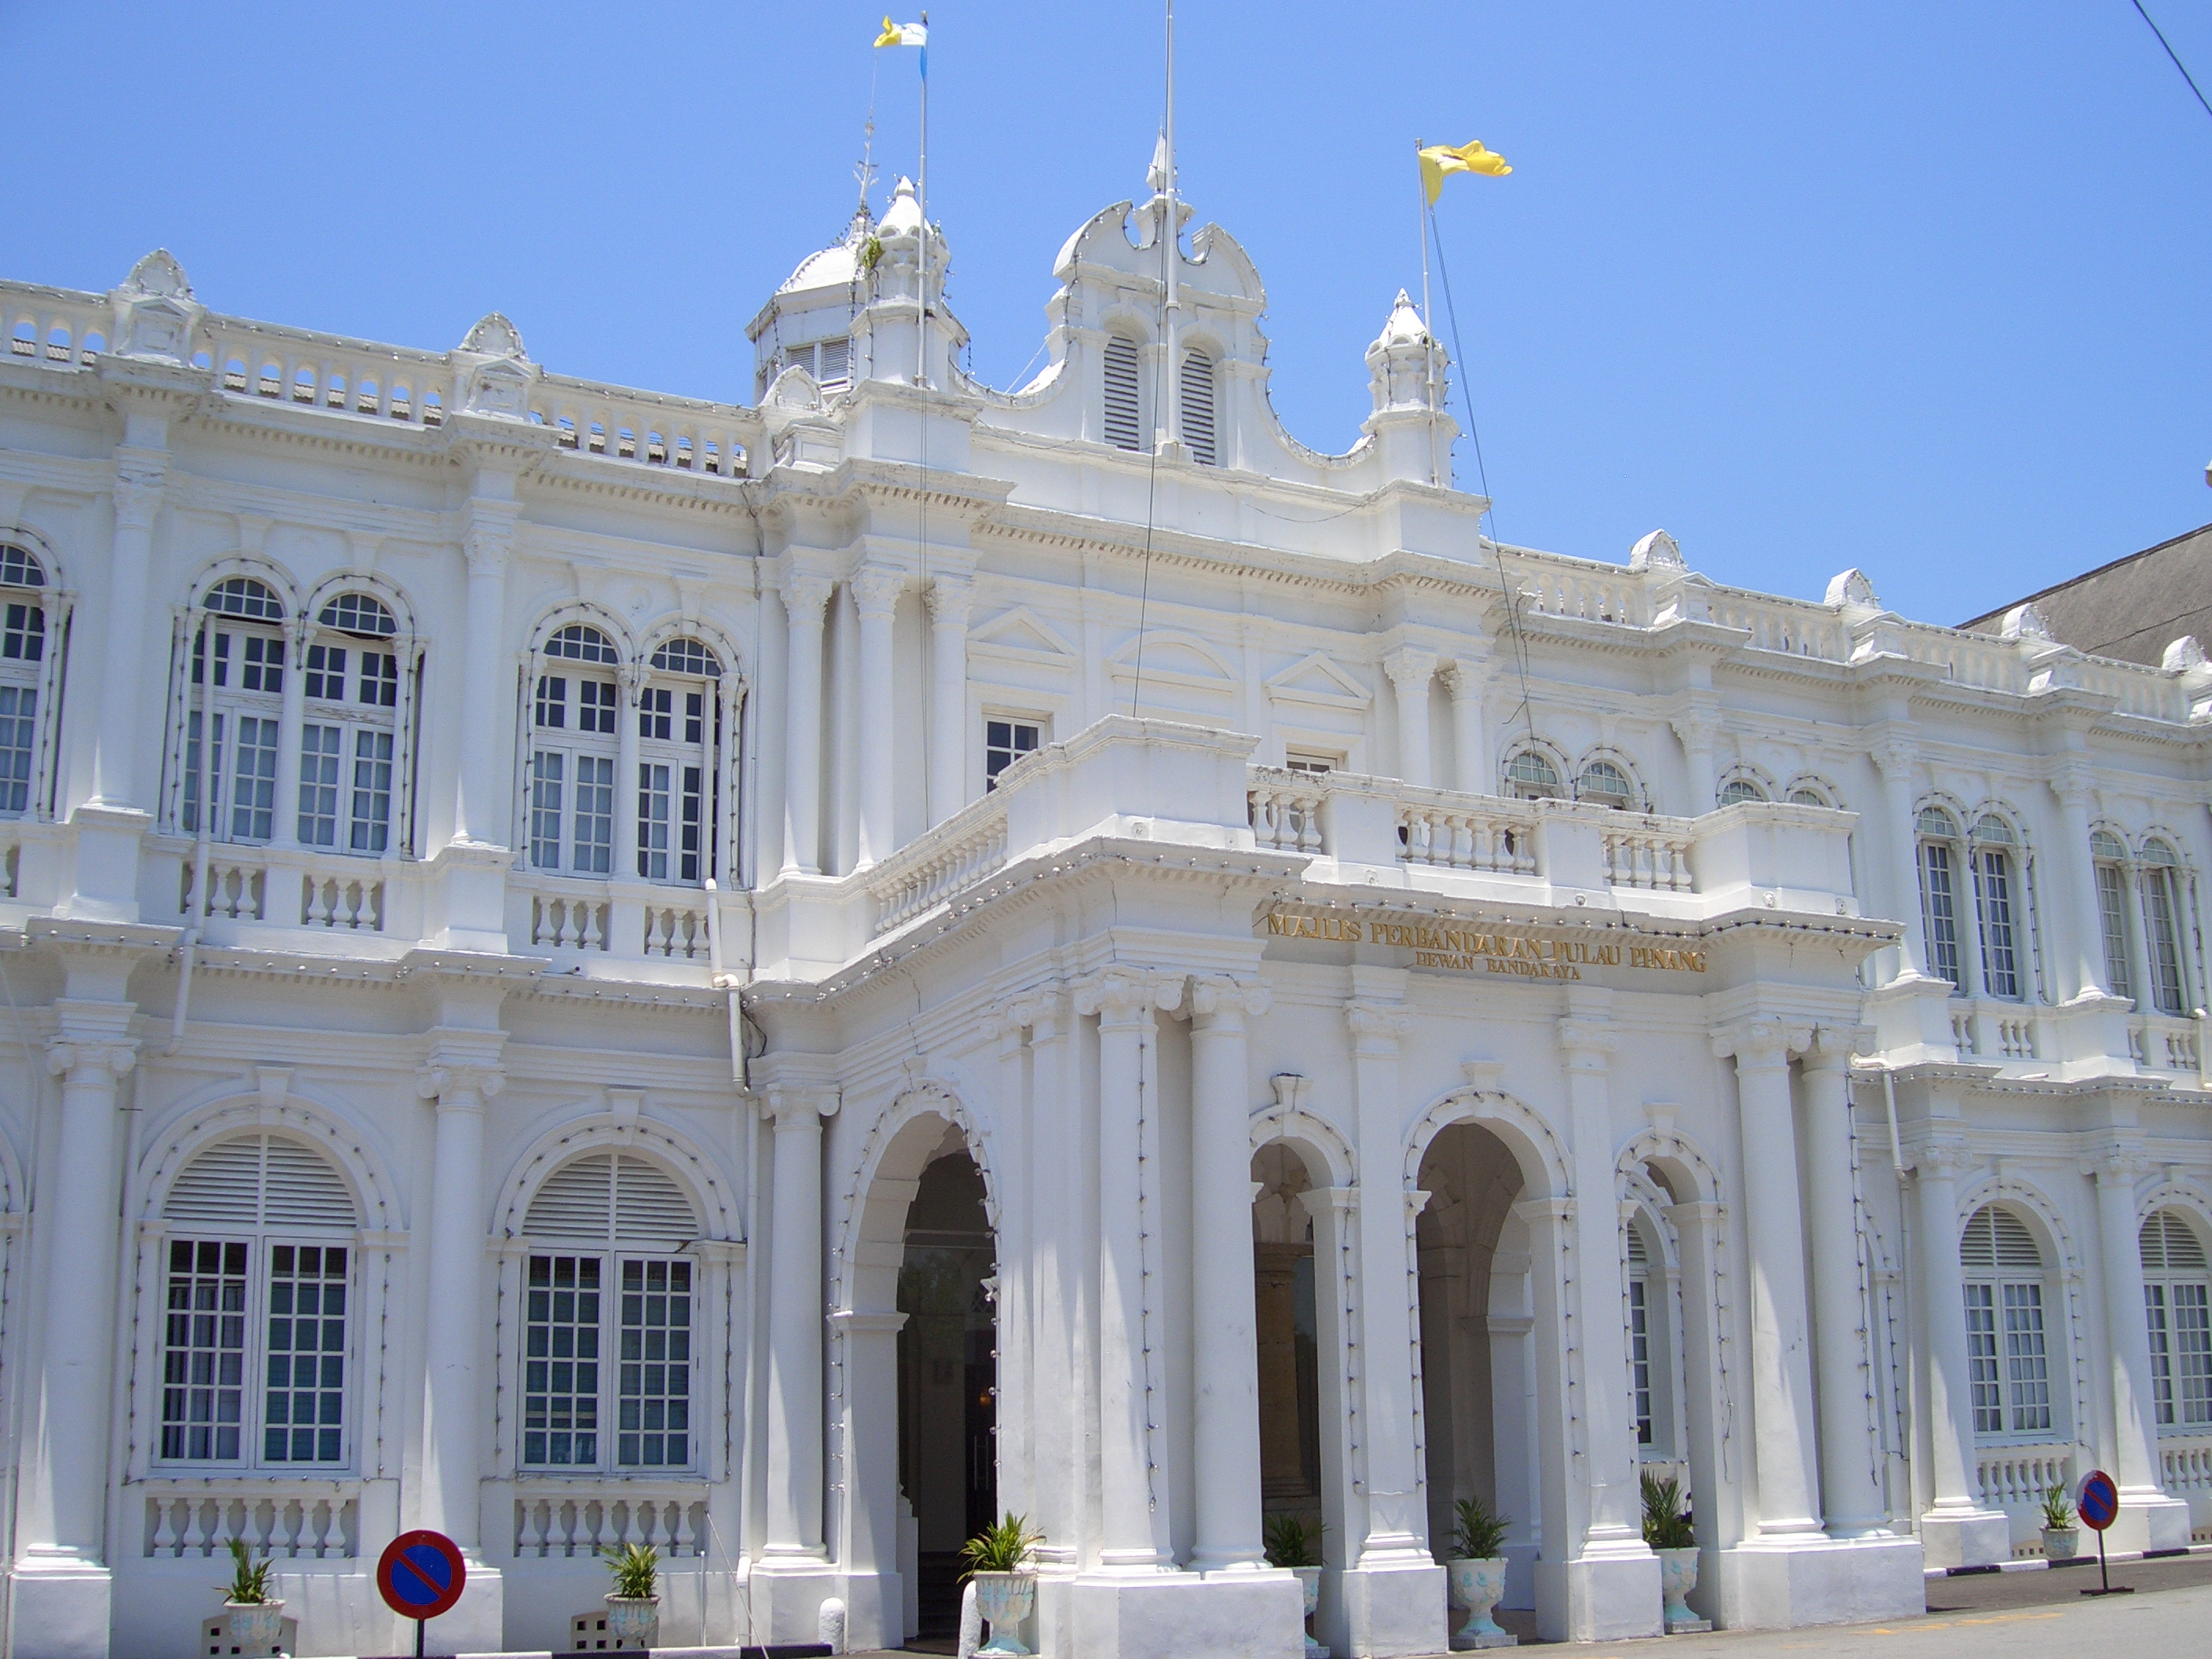 The City Hall in George Town, Penang, is steeped in Edwardian Baroque and Palladian architecture. Photo taken on March 16, 2006.